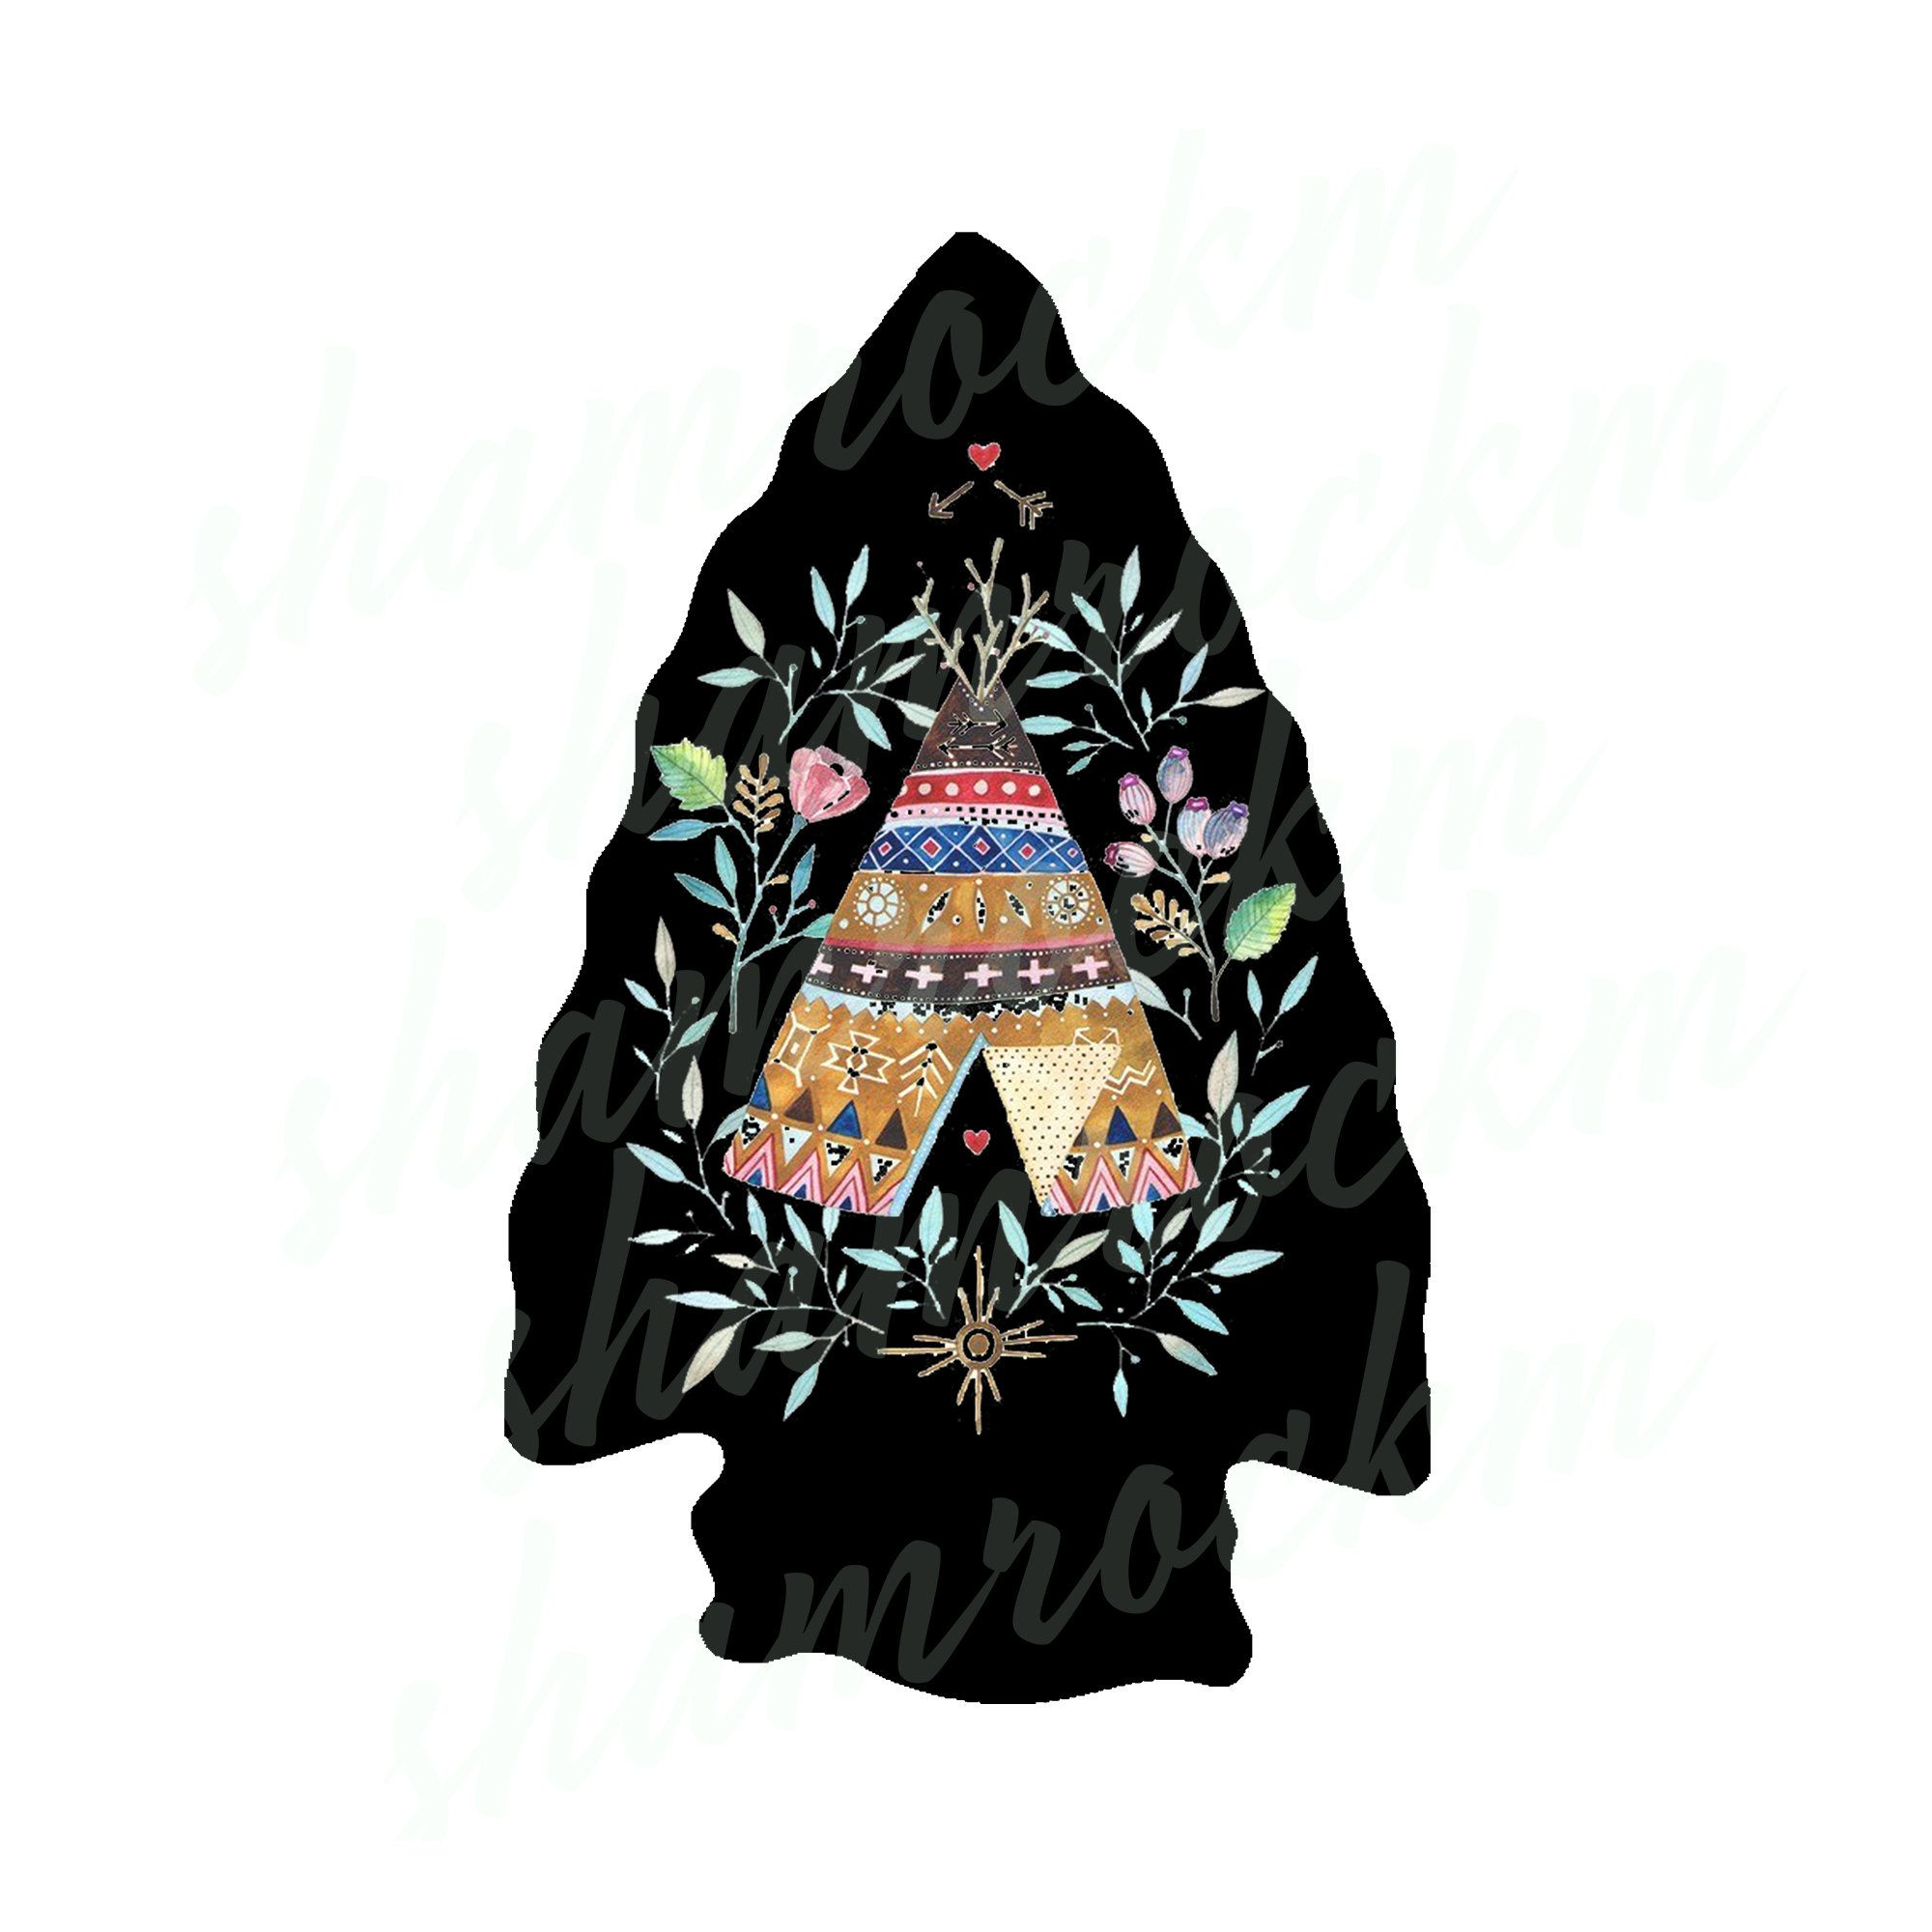 Black Arrowhead With Decorative Tipi Png Images With Etsy In 2020 Png Images Image Arrowhead